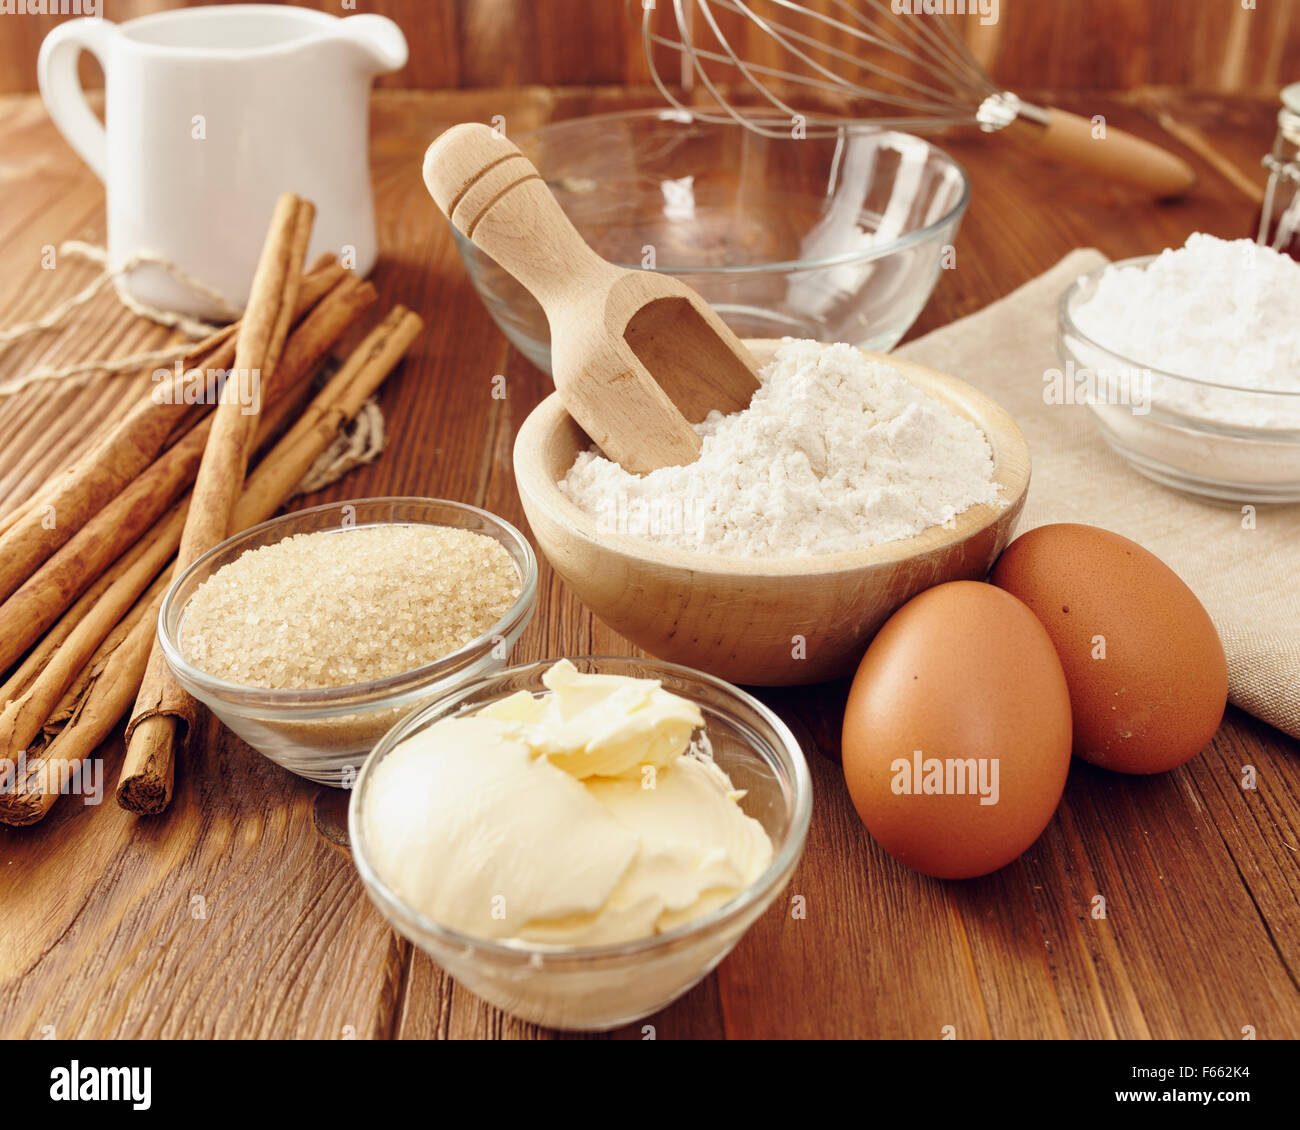 Ingredients to make a cake or a dessert on an aged wooden for What are the ingredients to make a cake